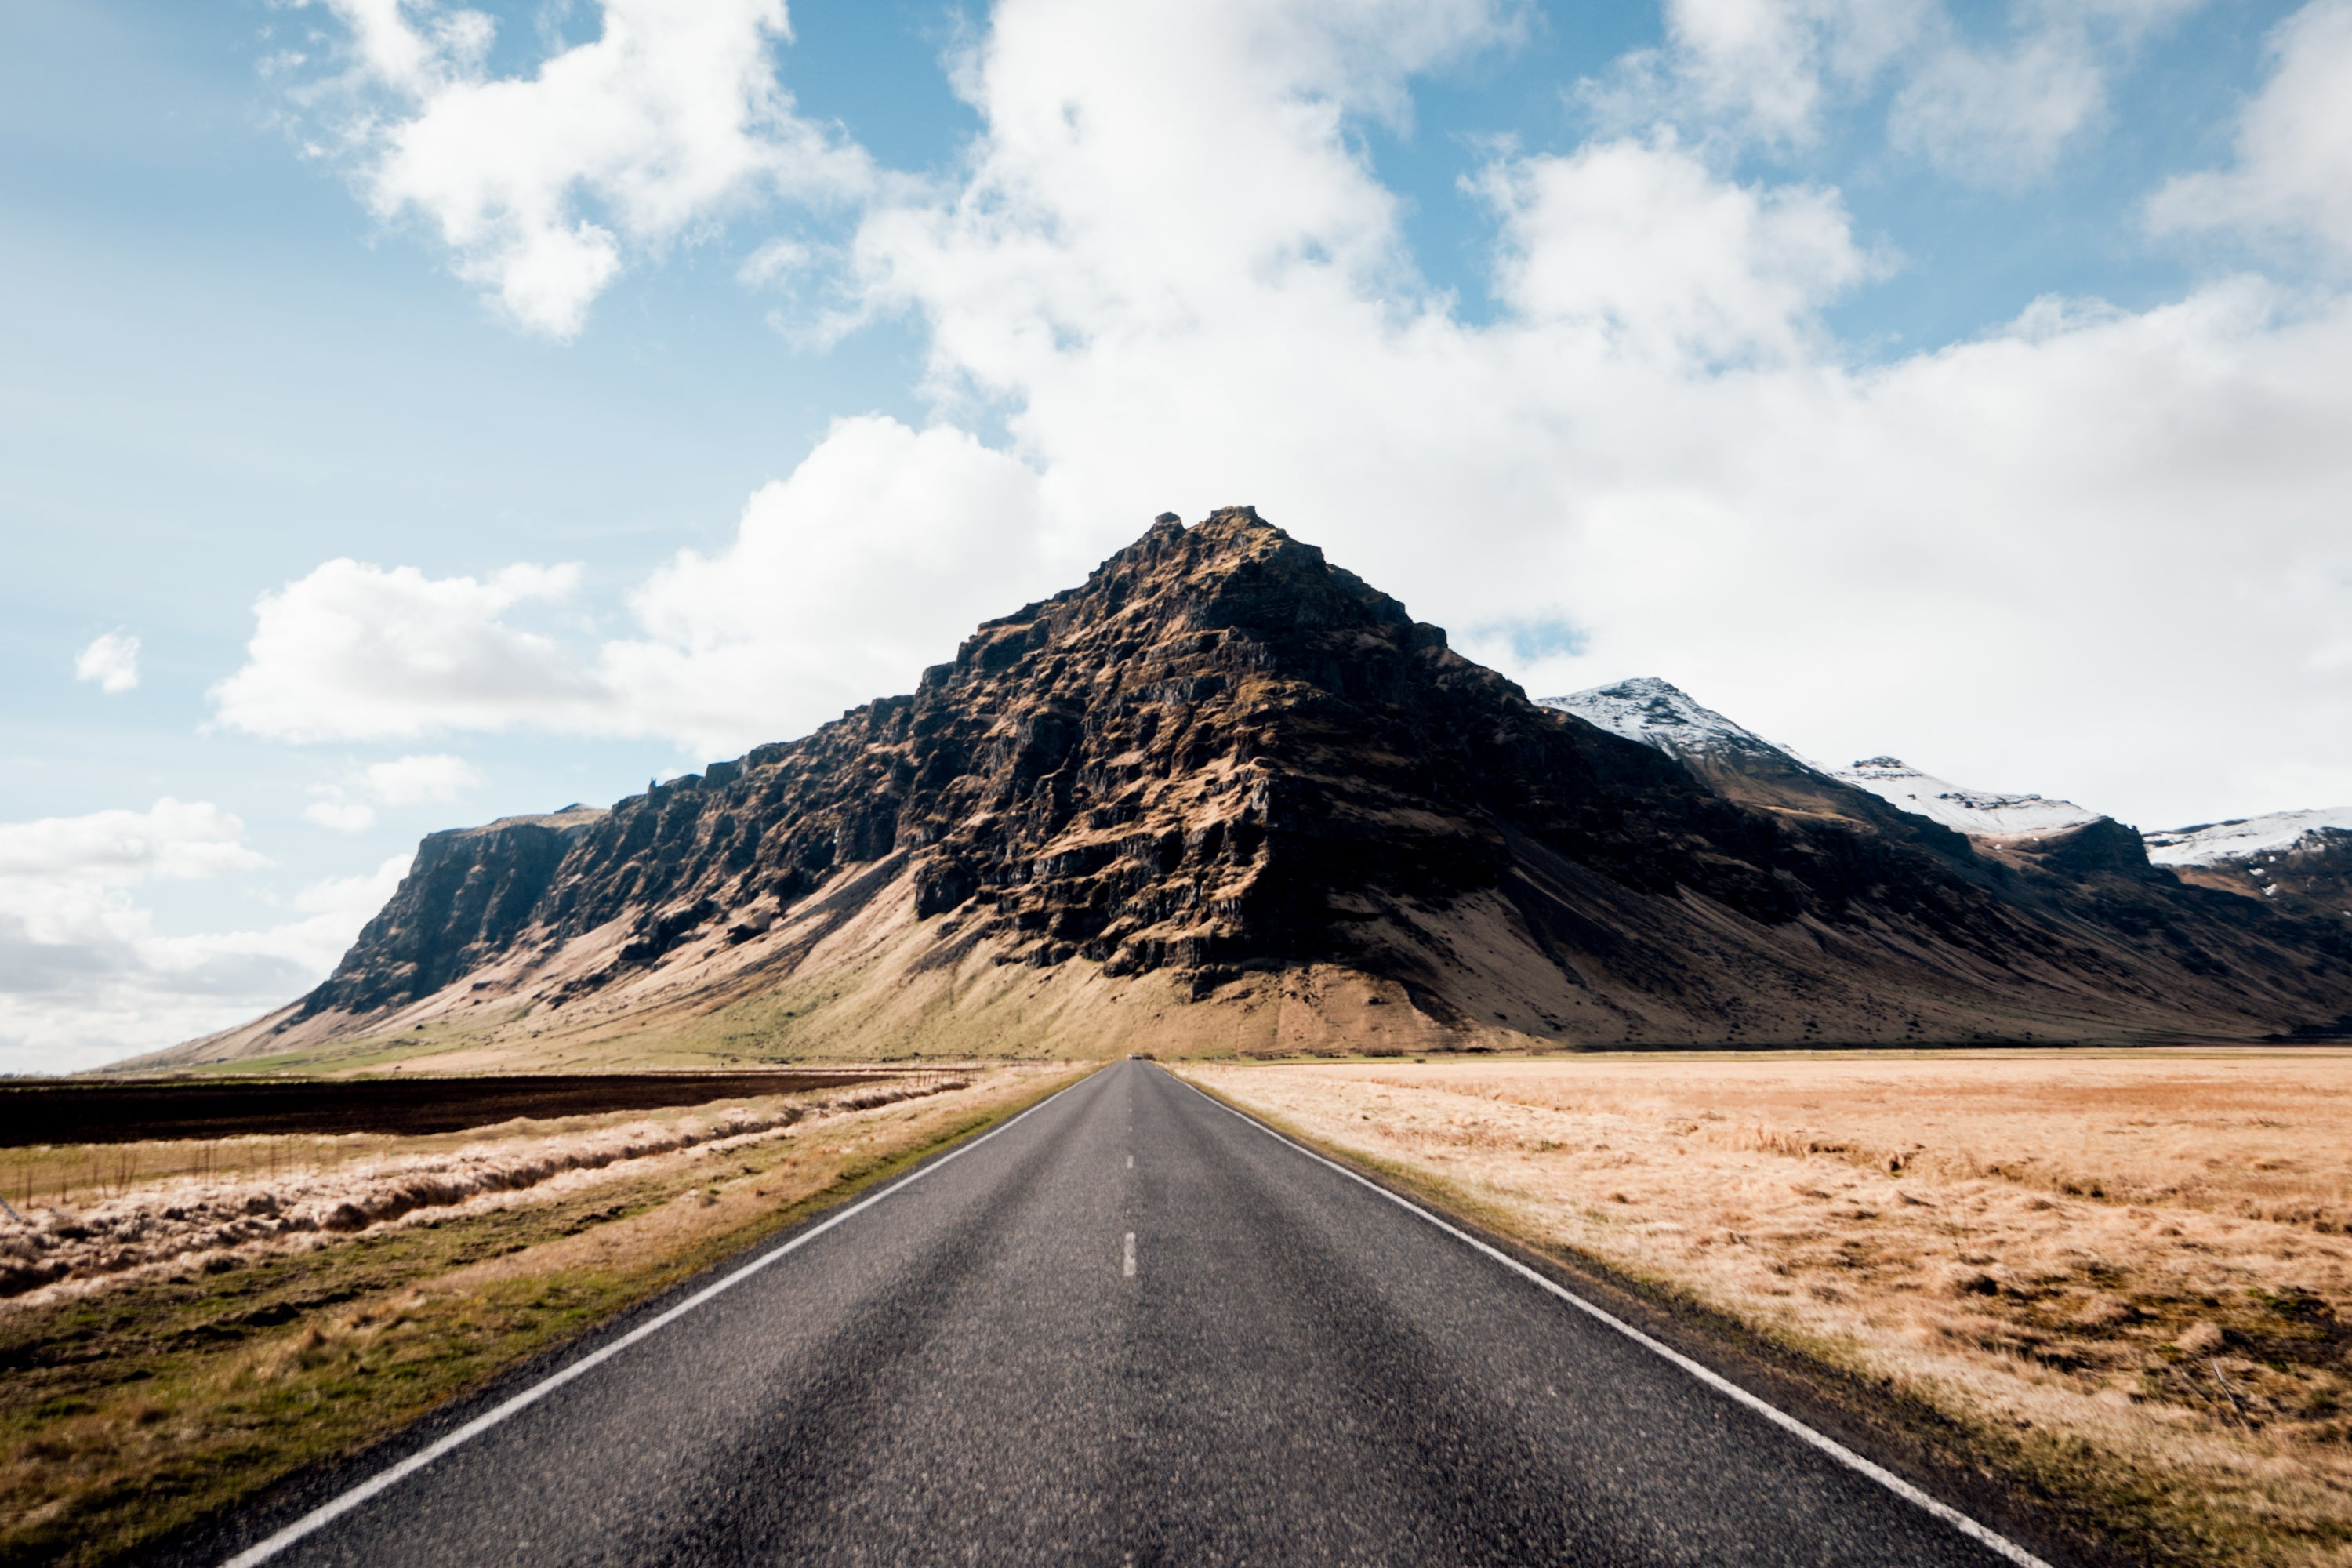 Road in Iceland photographed by Max Chesnut